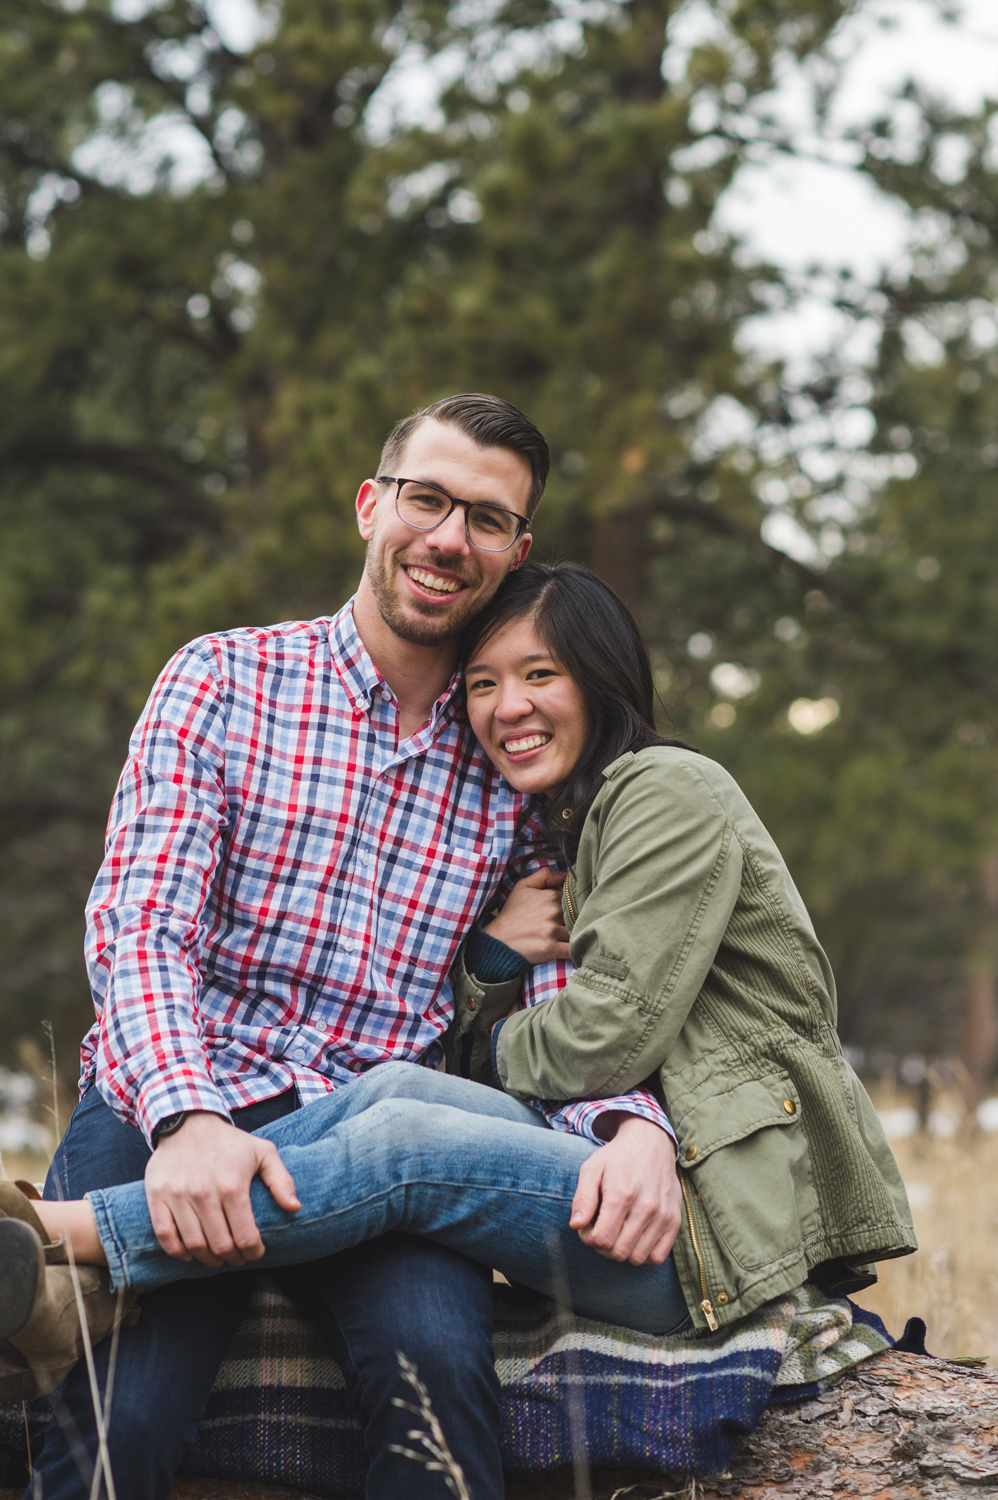 TiffanyandMark_Engaged_0411_squarespace.jpg